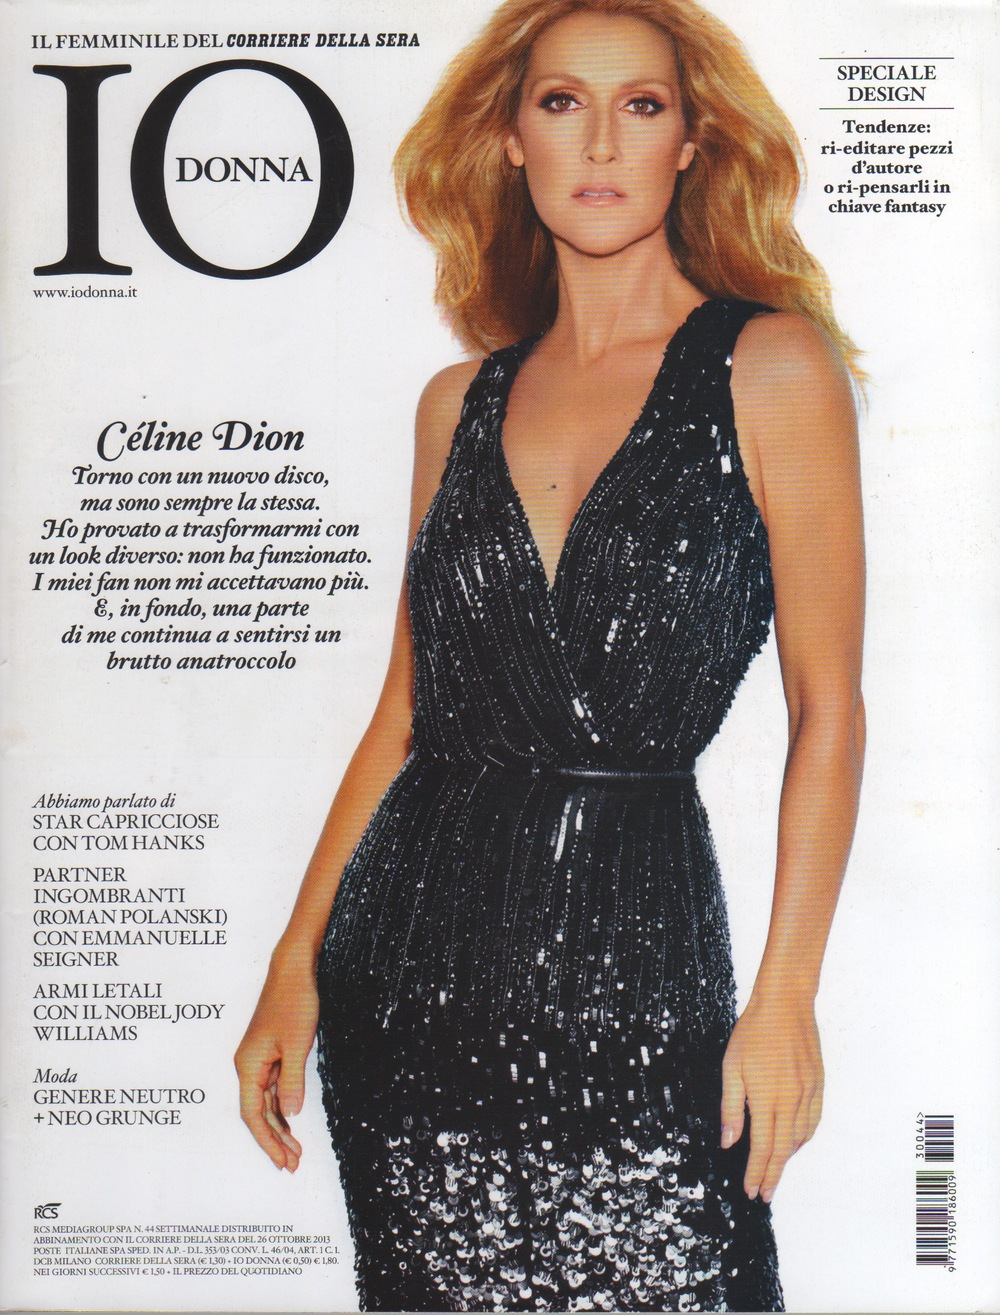 Io Donna, weekly supplement of Corriere della Sera newspaper, Italy October 2013